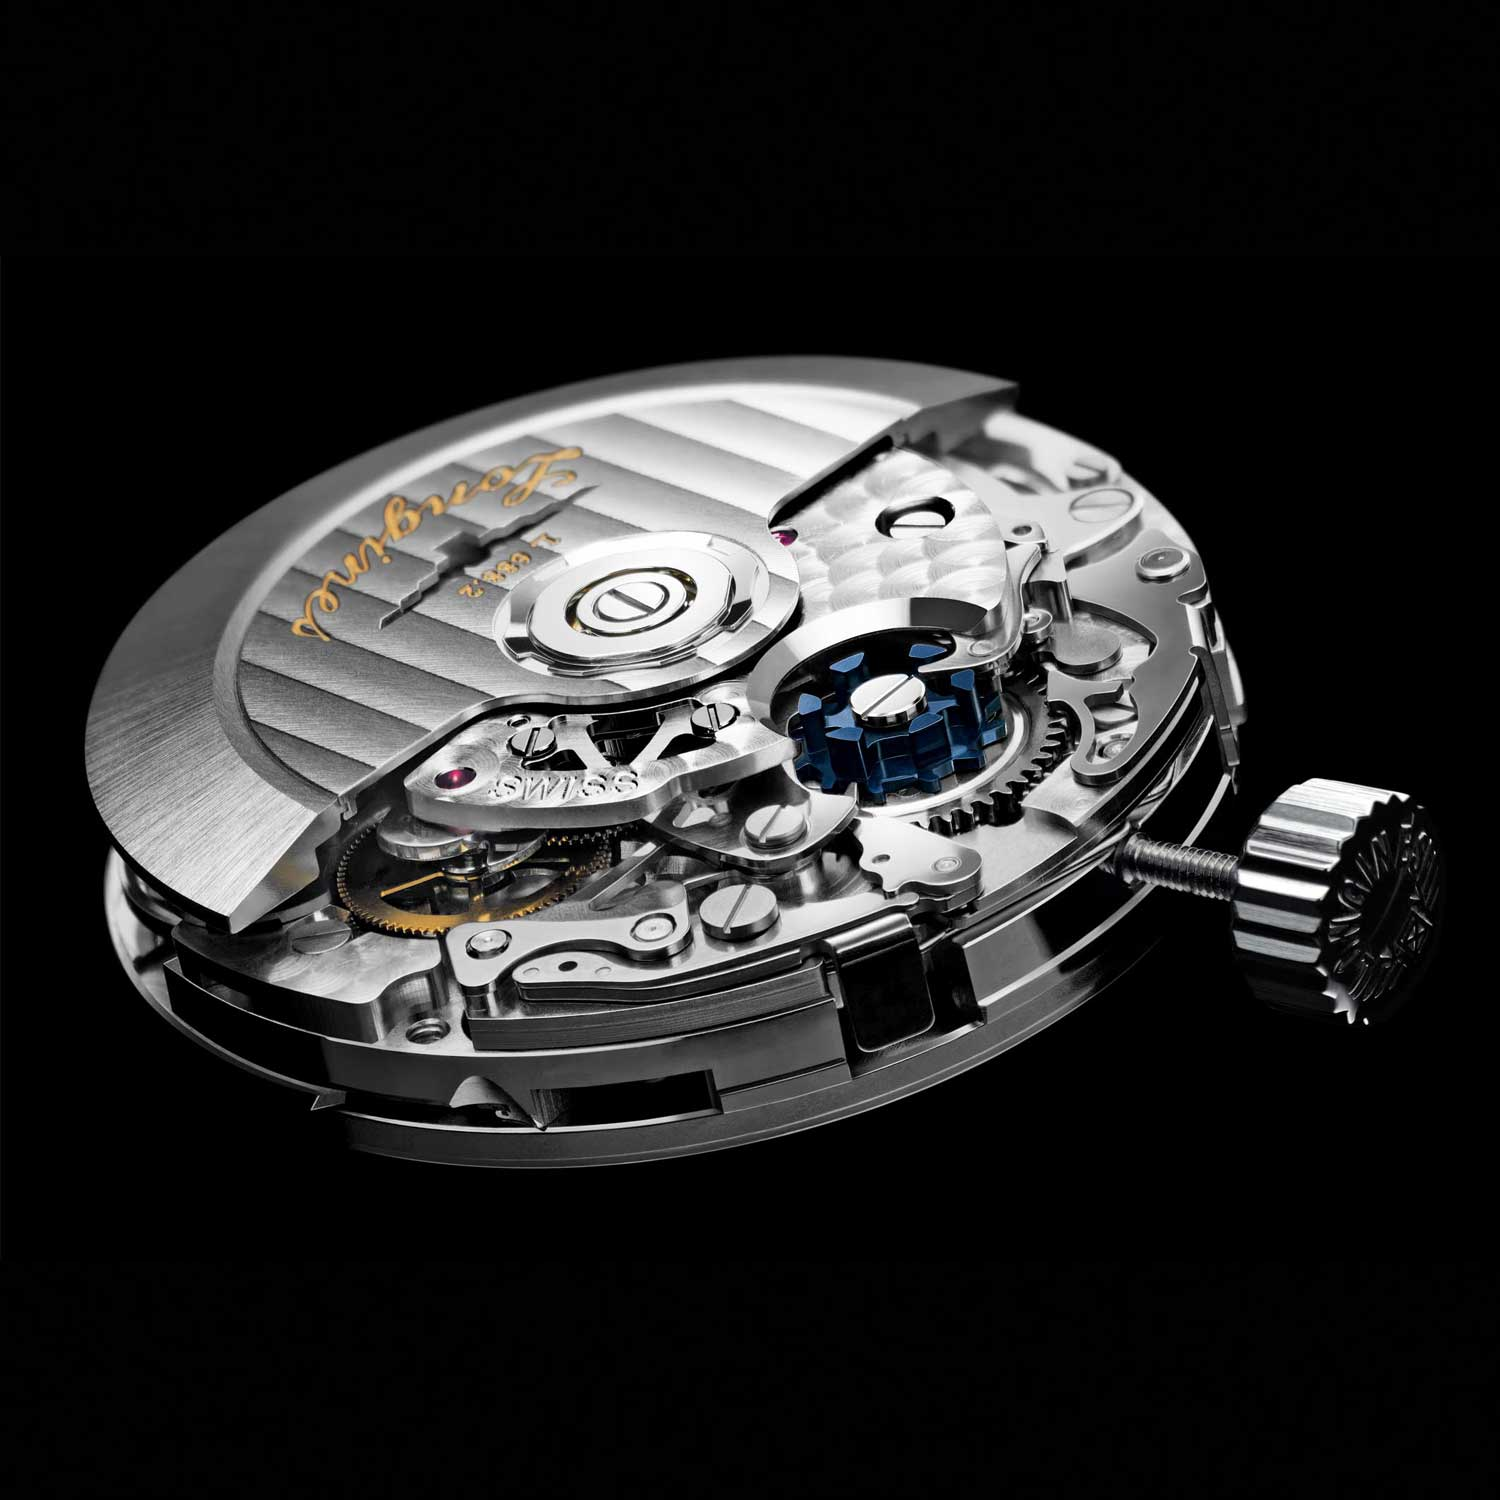 The ETA-developed L.688.2 caliber, exclusive to Longines, is remarkable for the use of a vertical coupling (hidden below the rotor and the chronograph bridge) and its affordability.